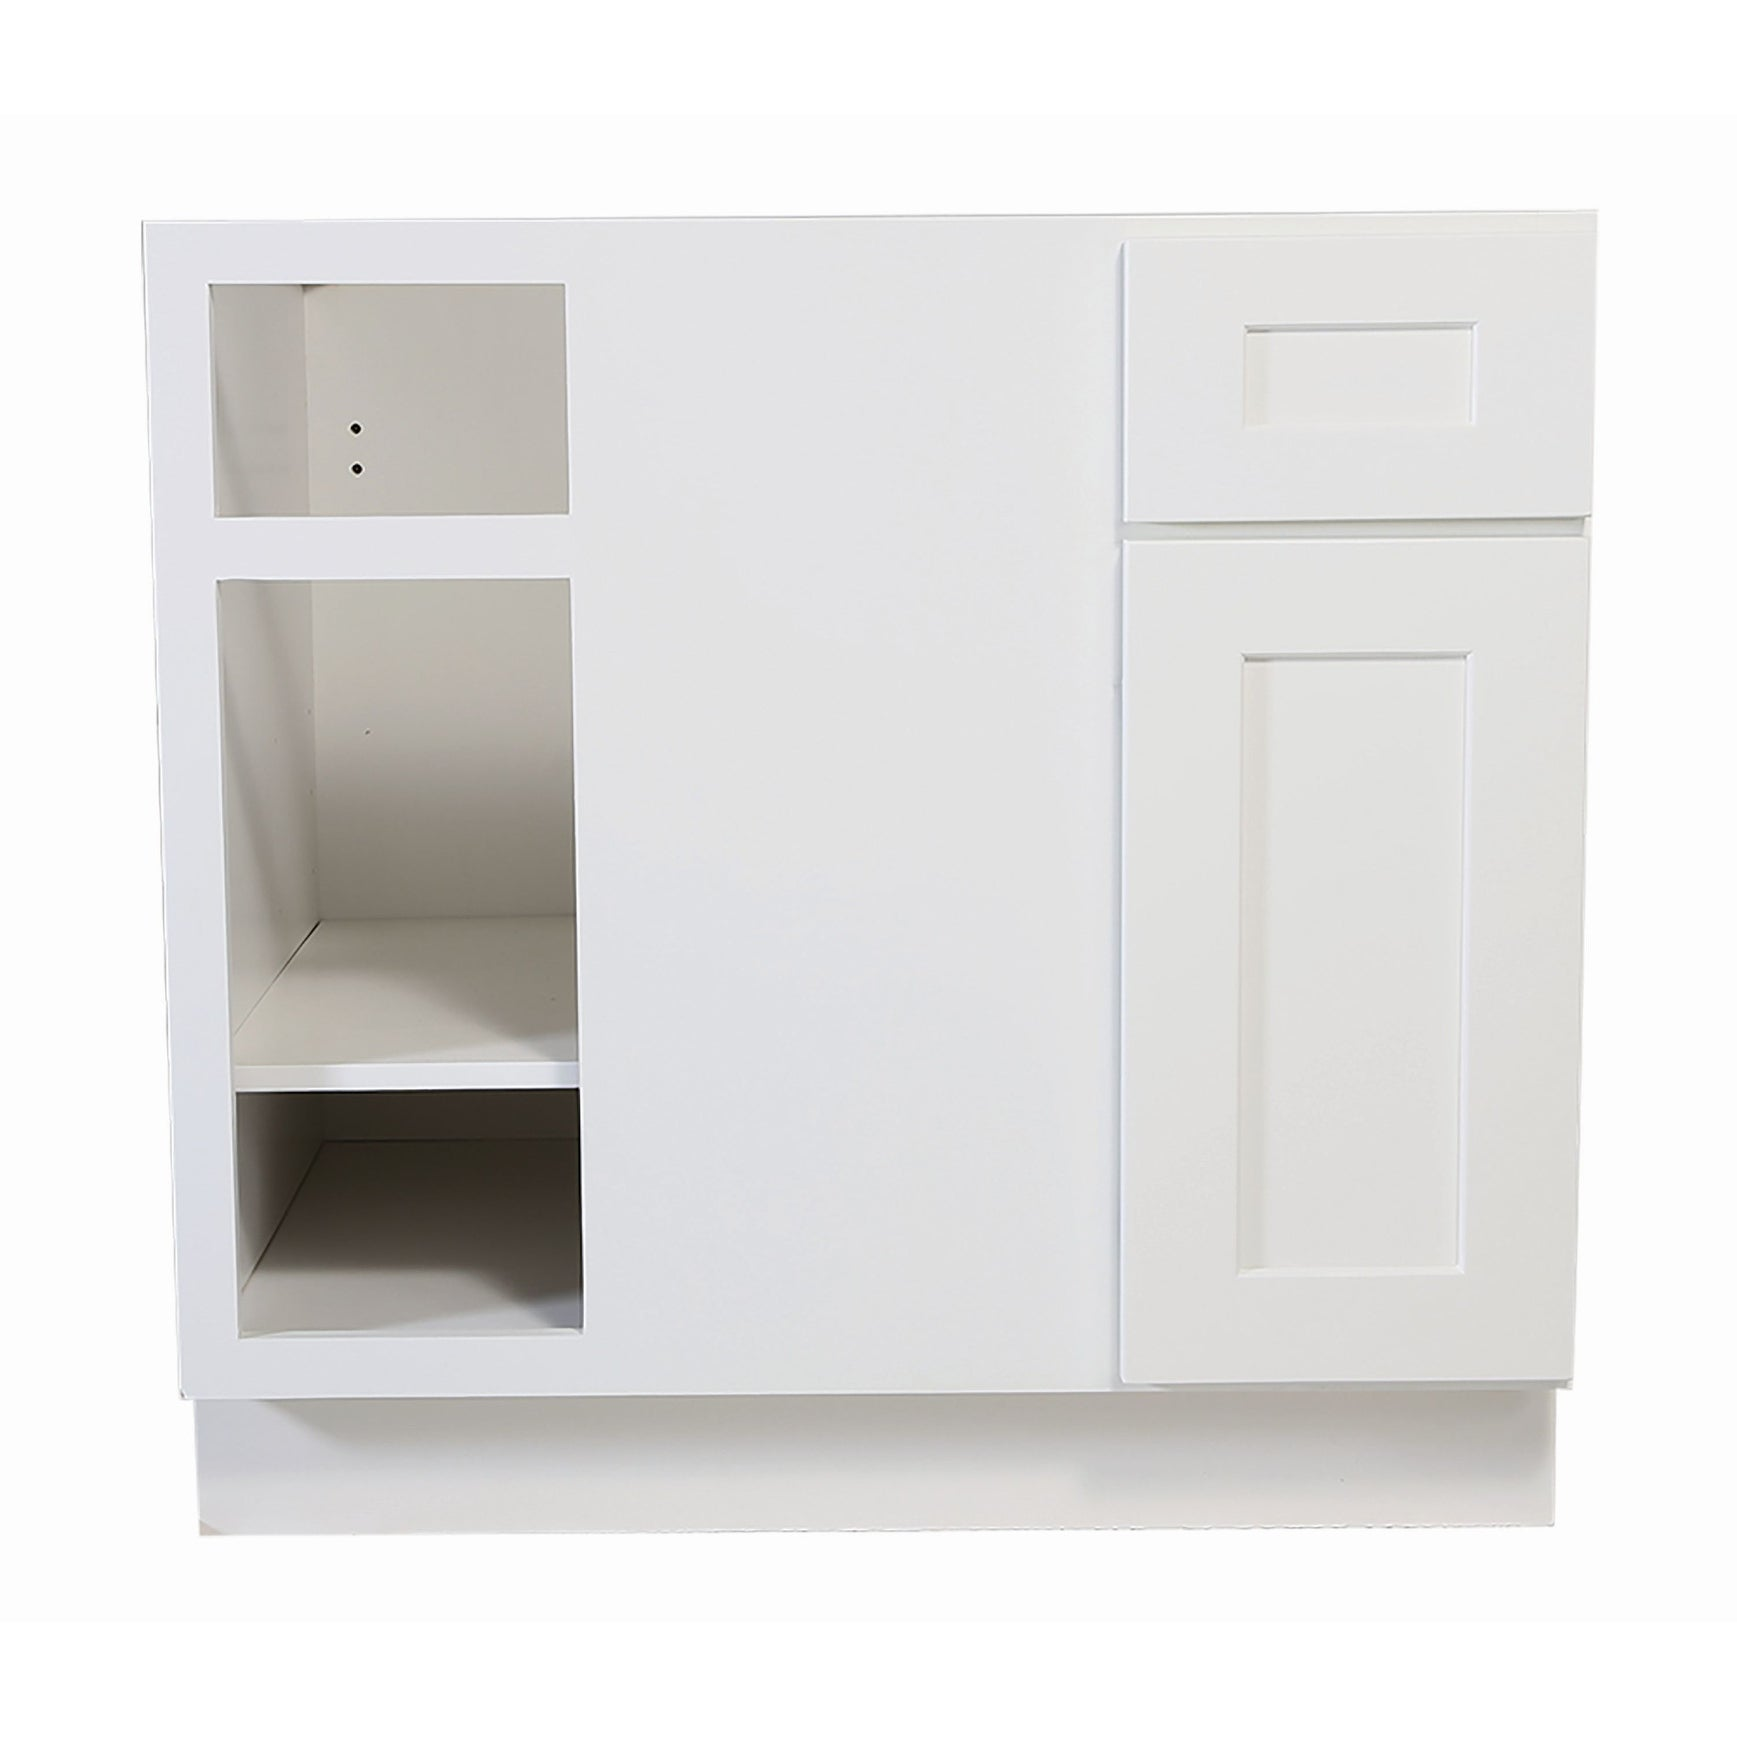 Design House 561522 Brookings 36 Wide X 34 1 2 High Kitchen Blind Corner Base Cabinet With Single Door White